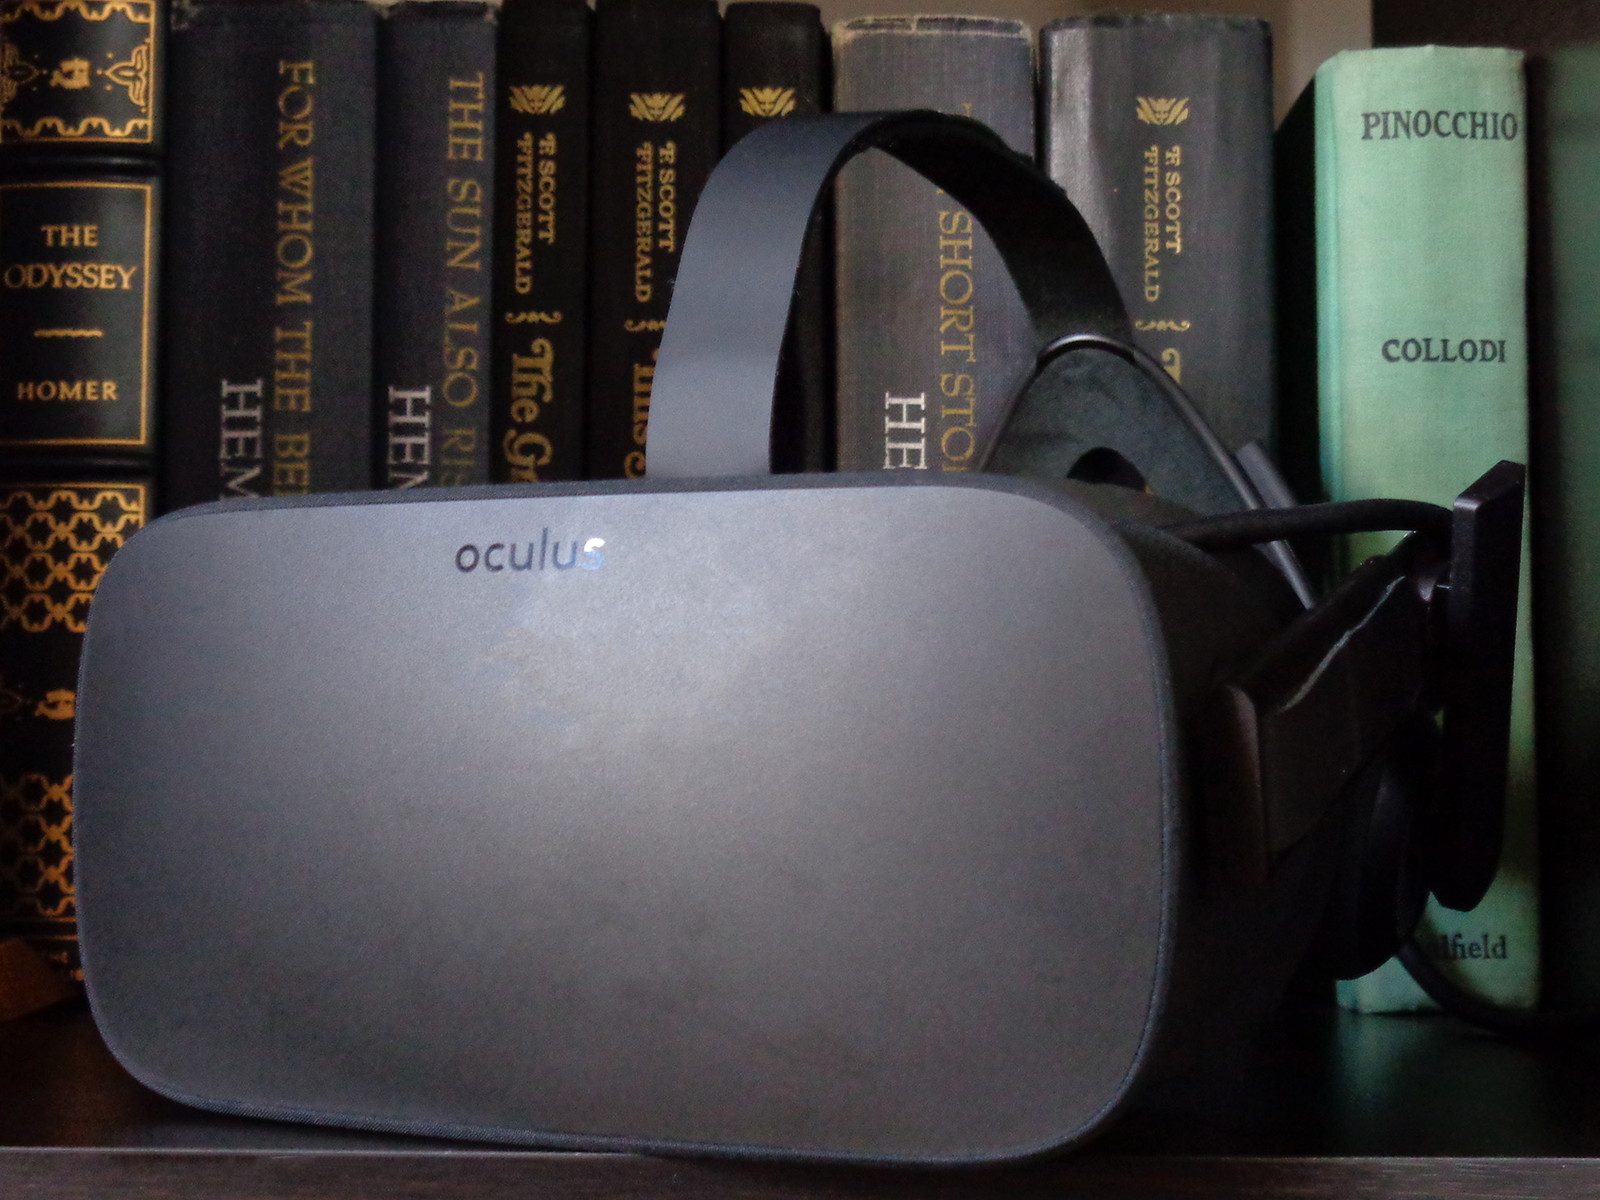 How to check your Oculus sensor's view and boundary with Desk Scene